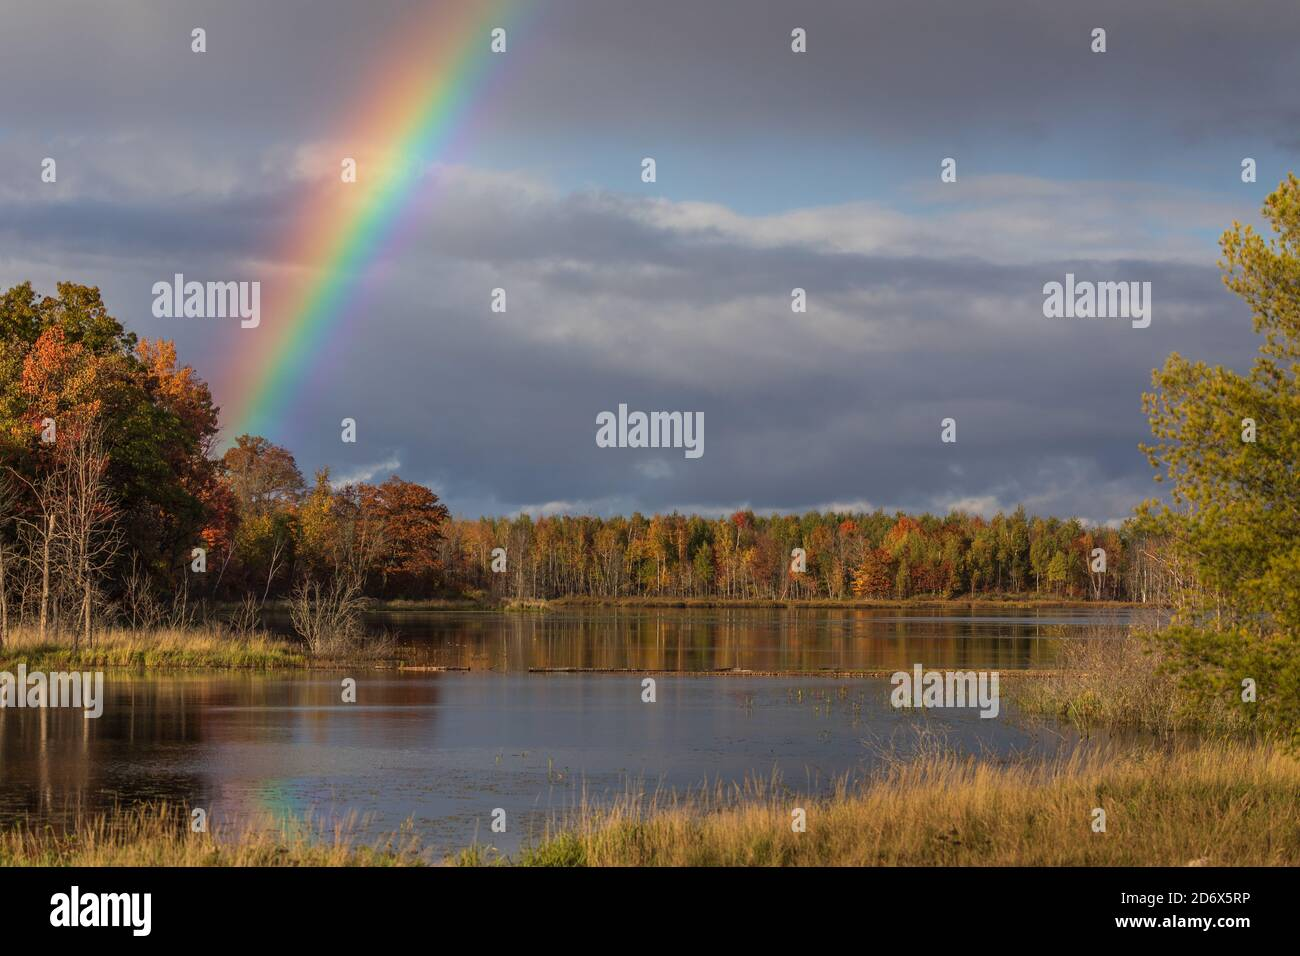 A pretty rainbow over a wilderness lake in northern Wisconsin. Stock Photo